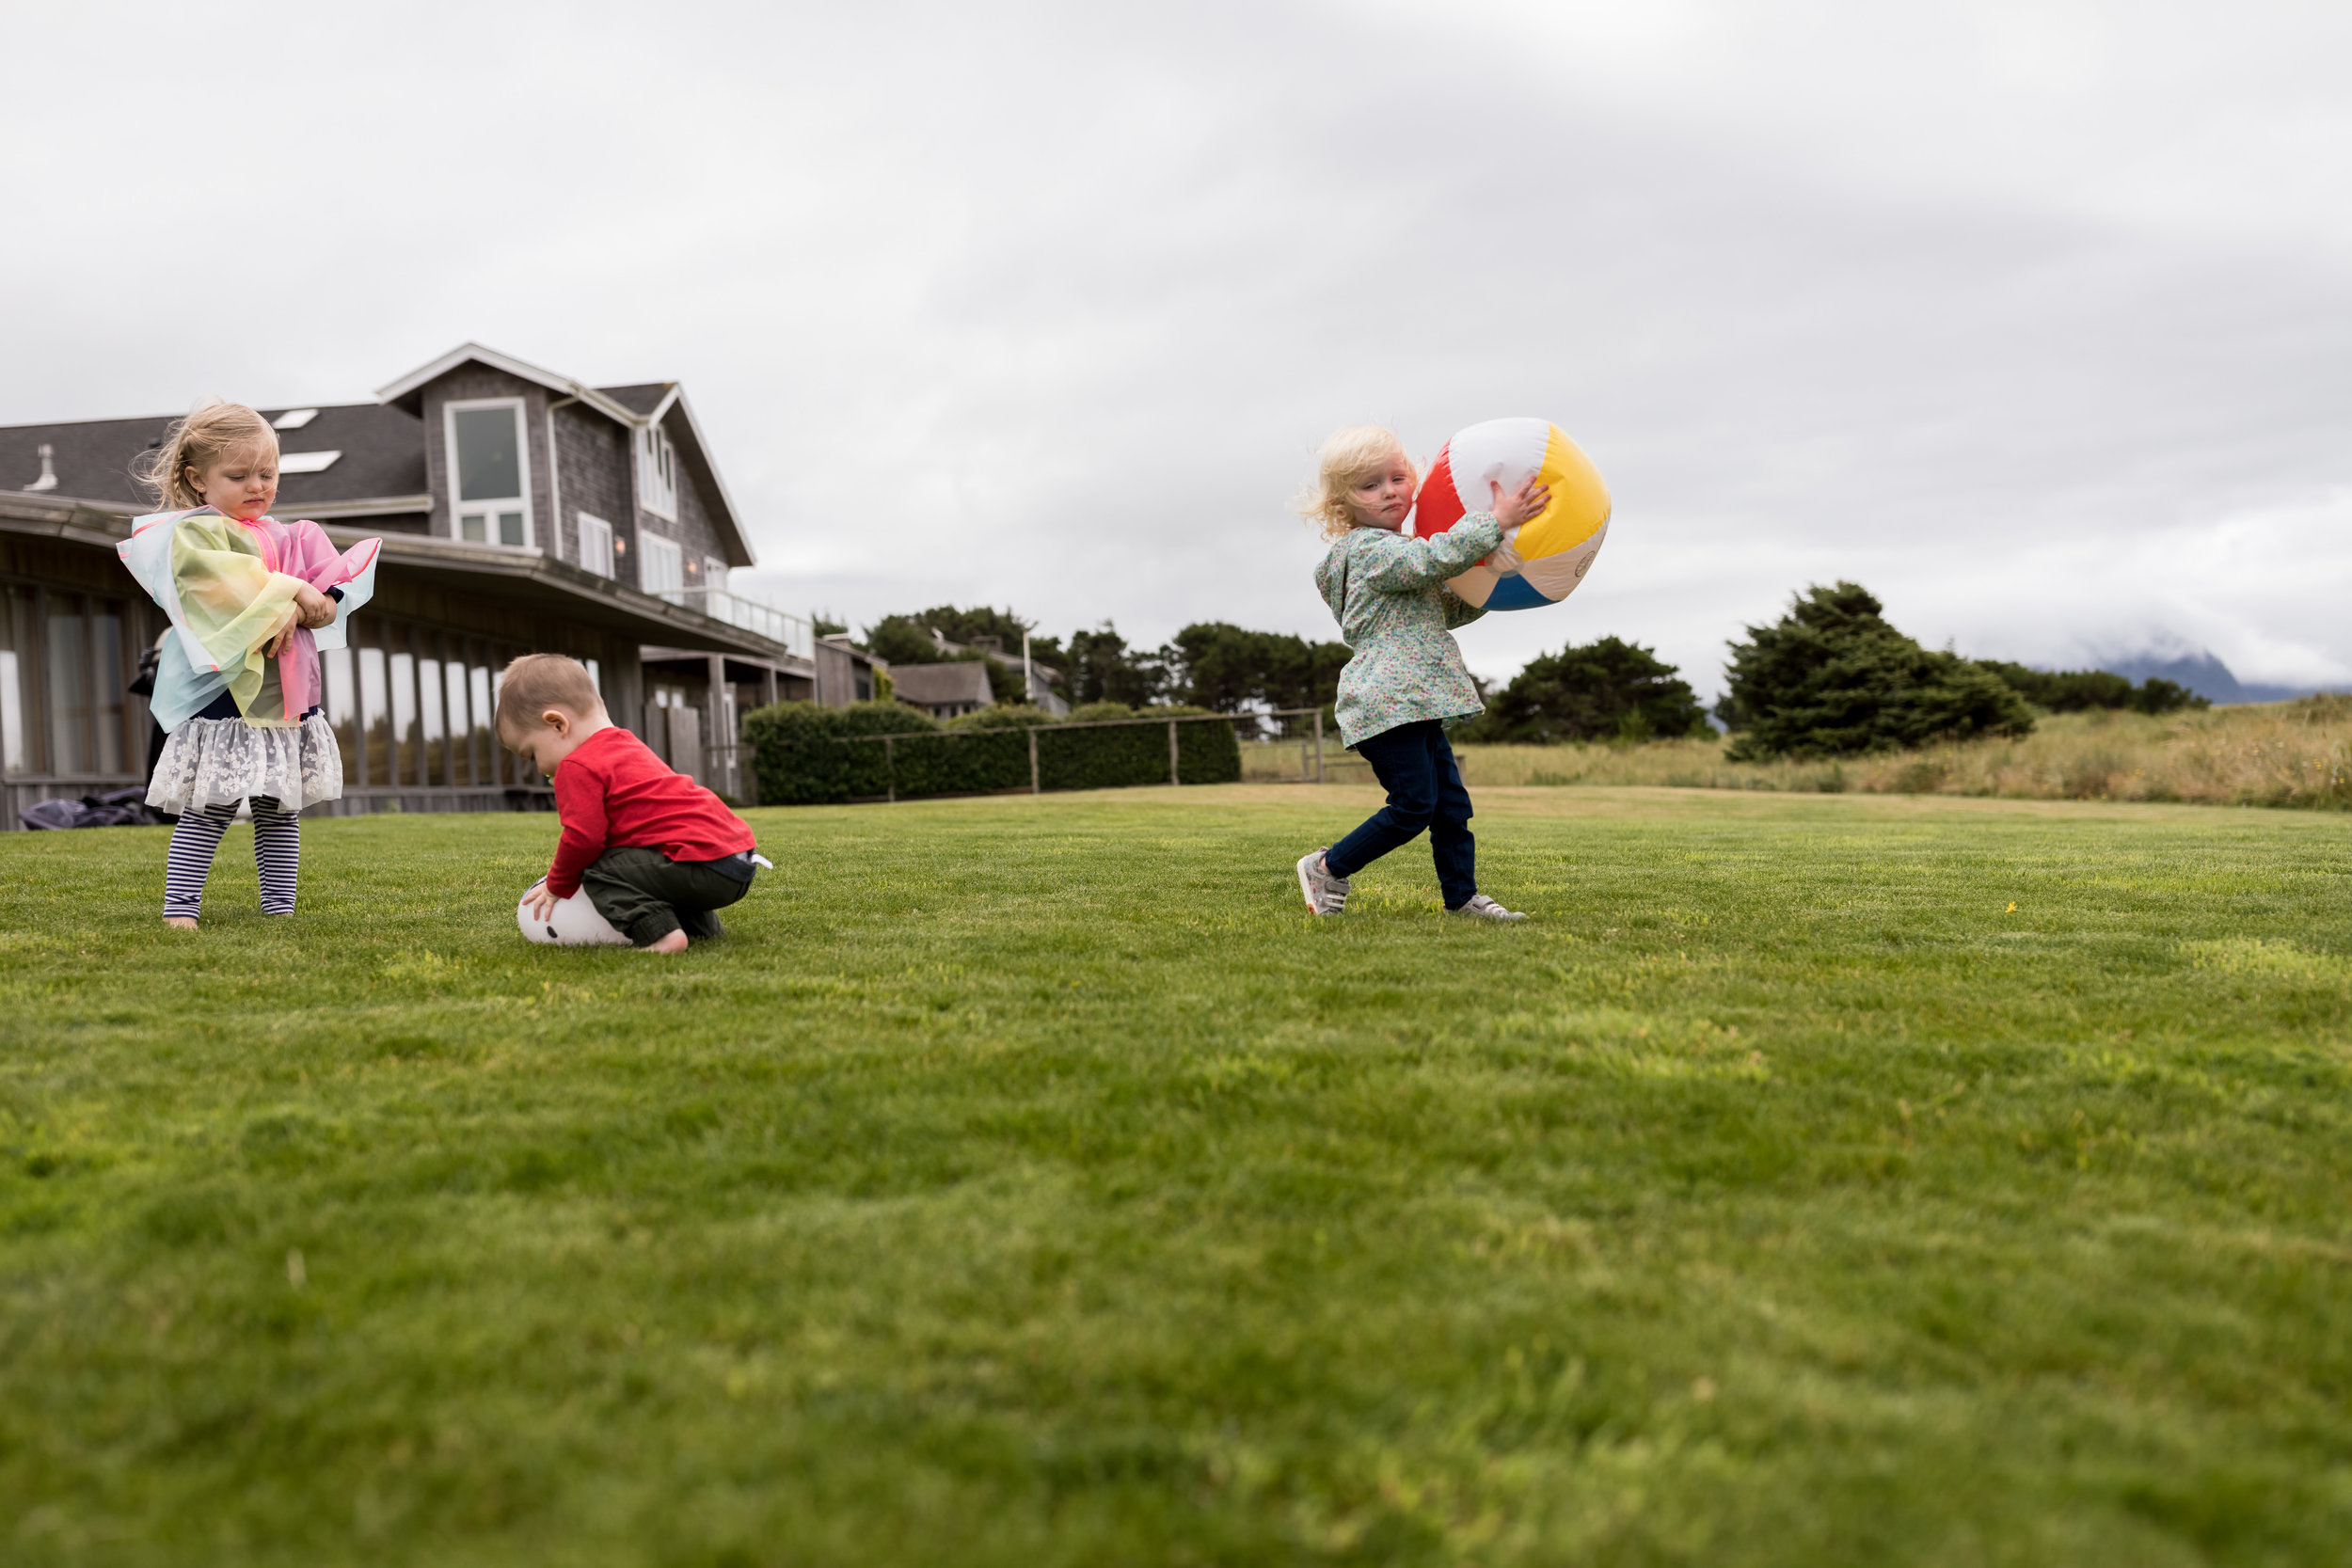 Girls steals ball from cousin while younger brother squishes a balloon.